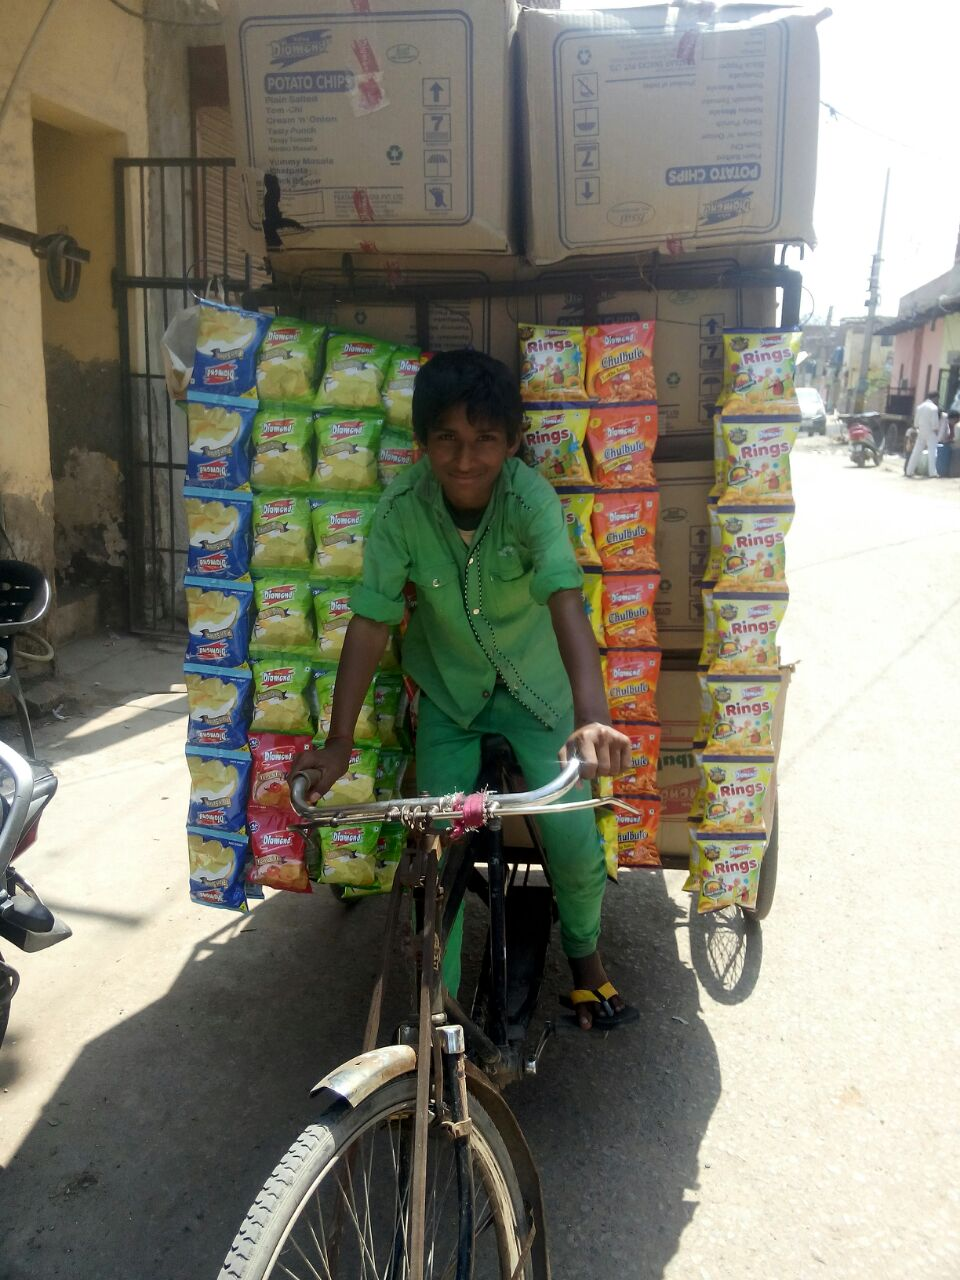 This boy works as a warehouse laborer. He transports snack items from the warehouse to different stores.